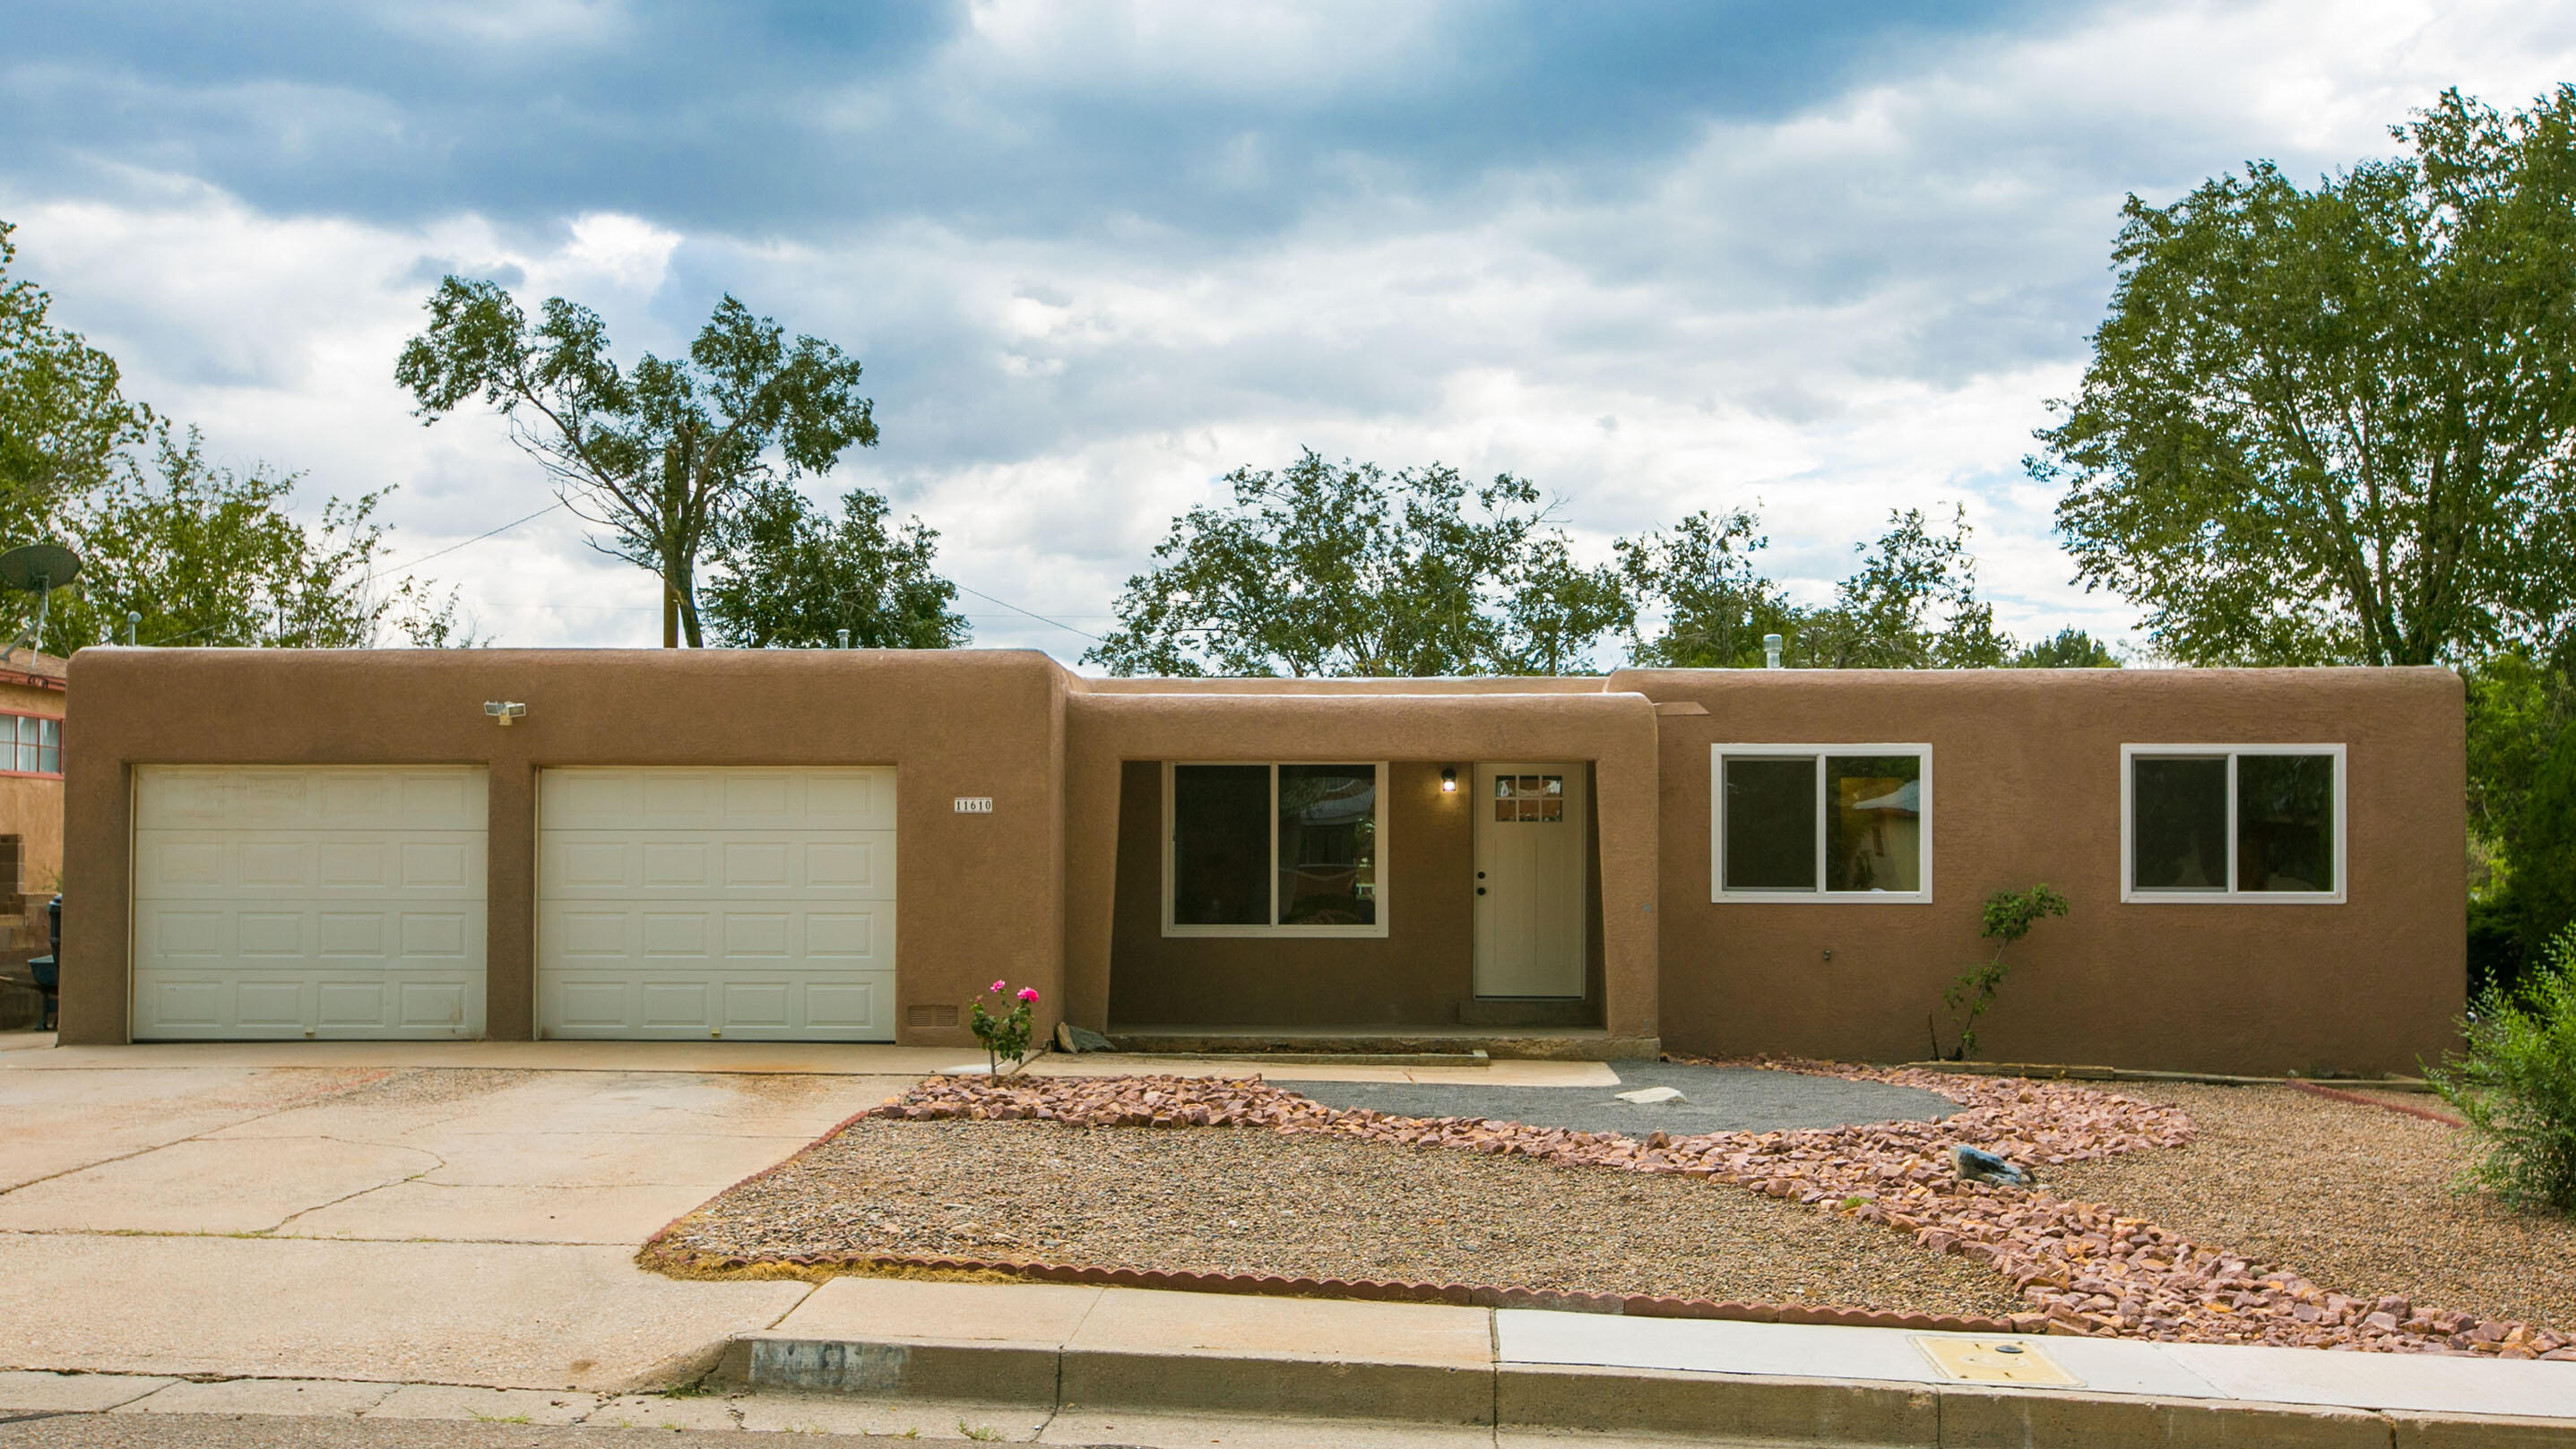 Don't miss this beautifully remodeled home in the desirable NE heights neighborhood of Snowheights.   Walk up to a charming front porch with an extra-large picture window.  Inside you have 2 large living areas, an open and spacious kitchen, built in book shelves and a rock fireplace.   Updates all done in 2021 include; new luxury vinyl flooring and tile throughout (no carpet), new roof, new furnace, new refrigerated air, and mini-split , new windows, stainless steel appliances, butcher block counter tops, and a freshly xeriscaped front yard.